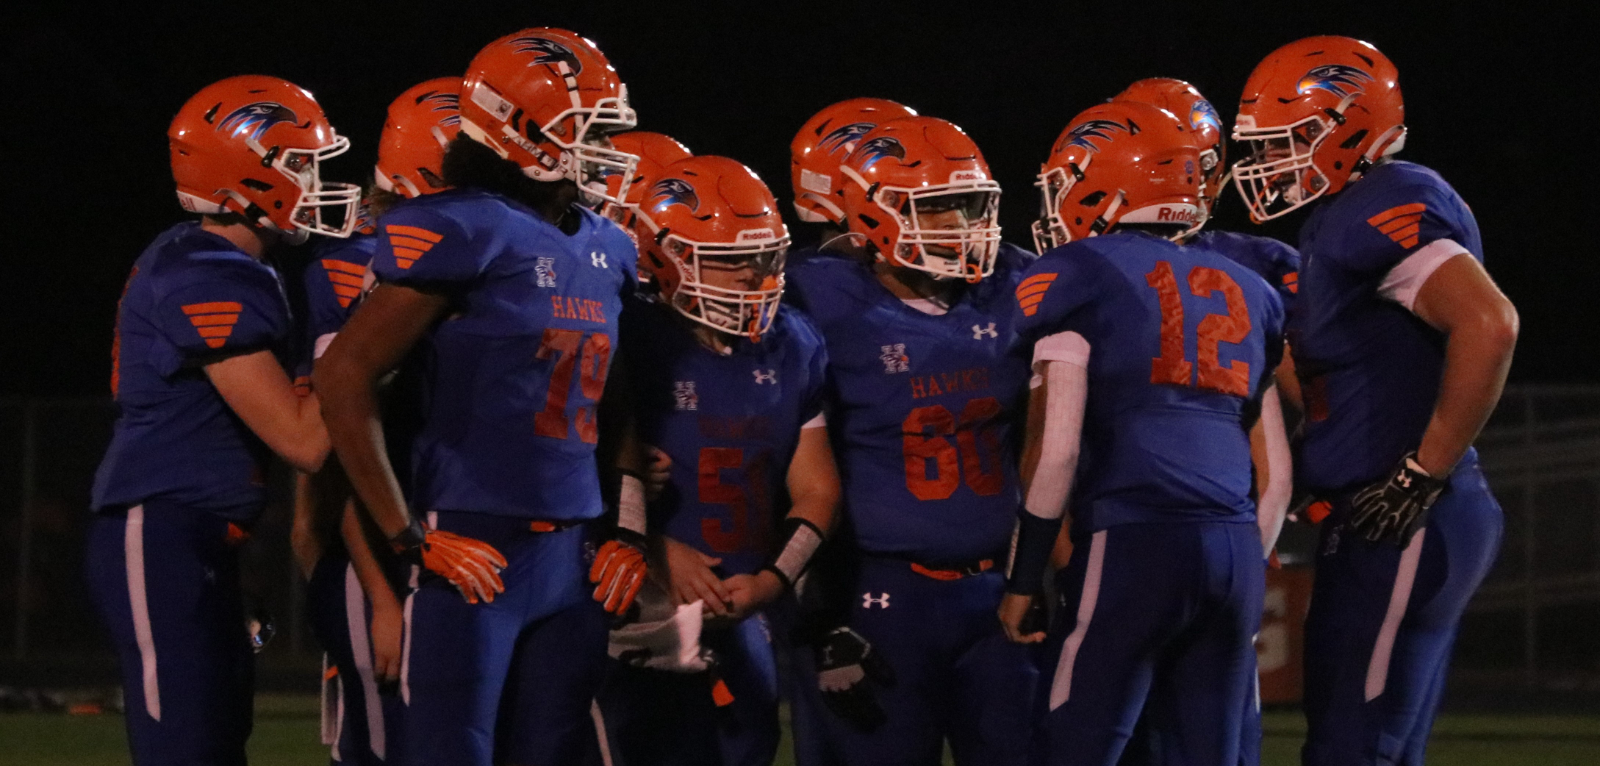 10.16.2020 (PHOTO GALLERY):  Hanahan Varsity FB vs Academic Magnet (HHS wins 55-10) – Photos by Cyril Samonte